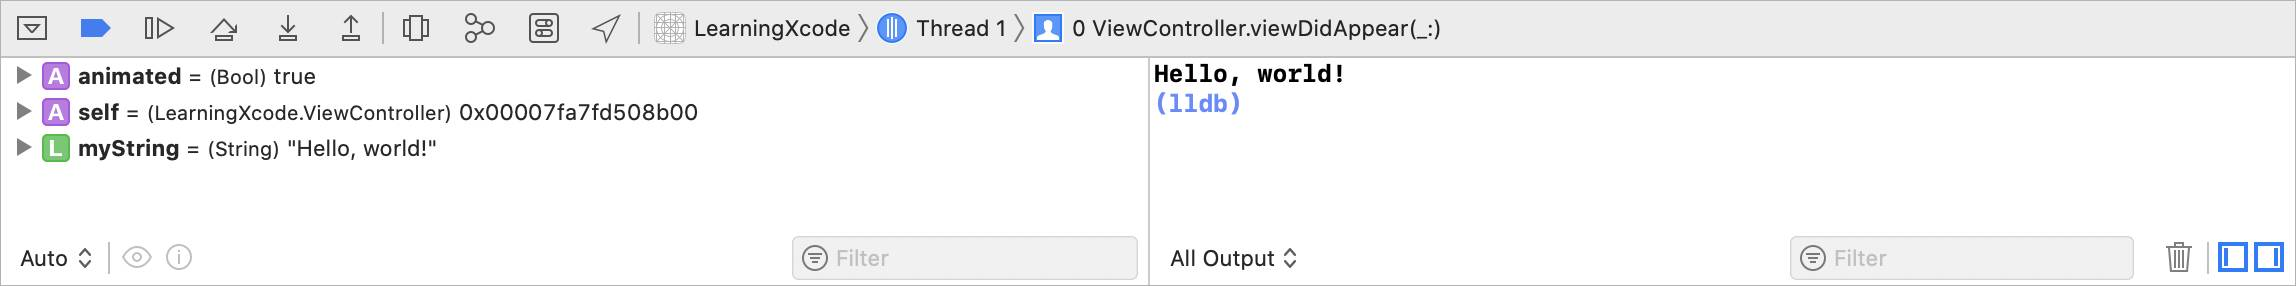 The Xcode Debug Area with the code and Hello, world! result in review.